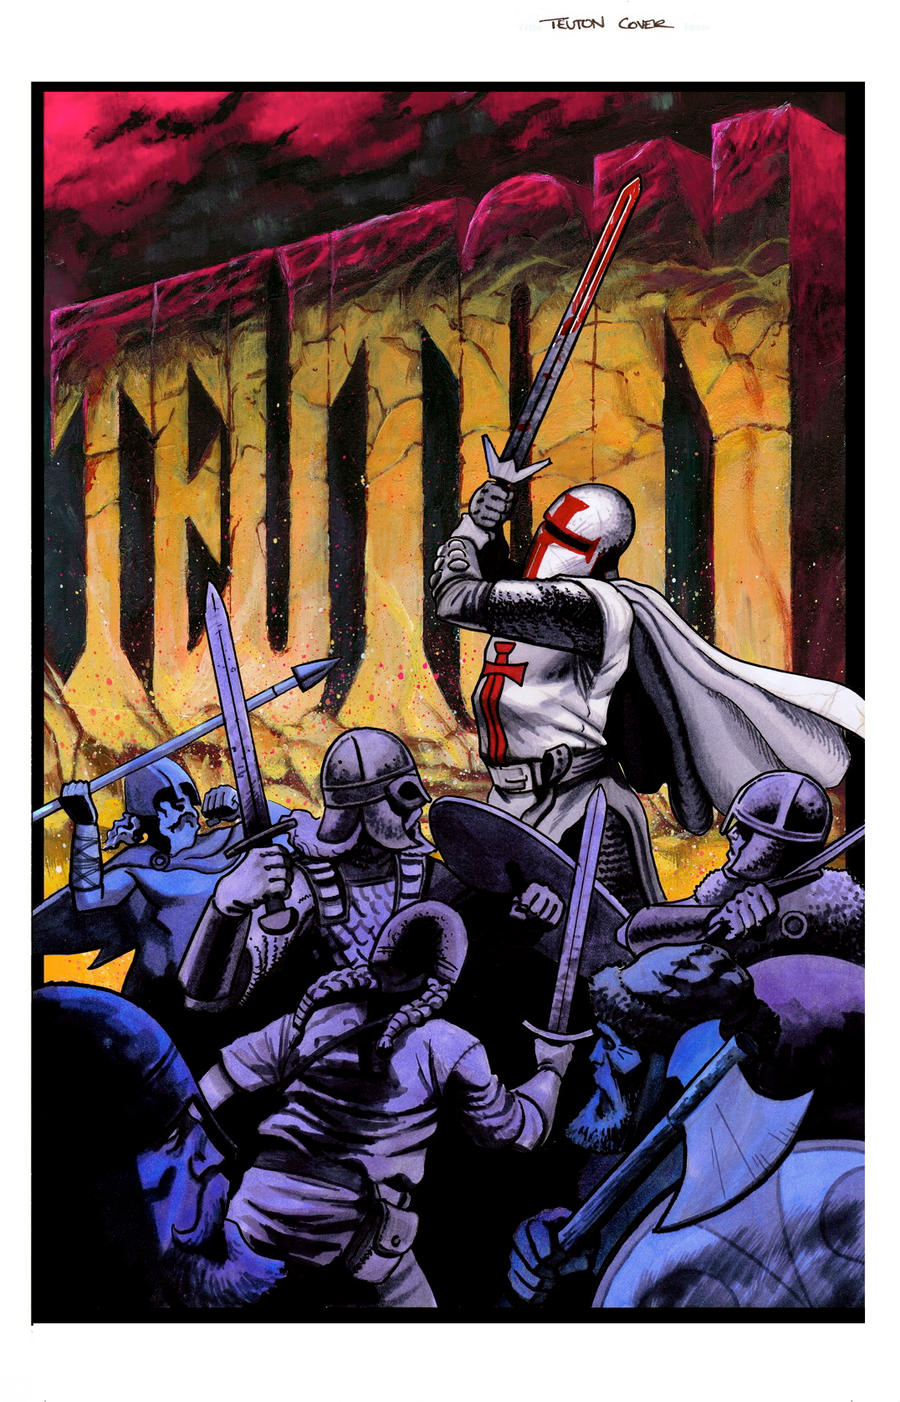 Teuton Trade Cover by ADAMshoots